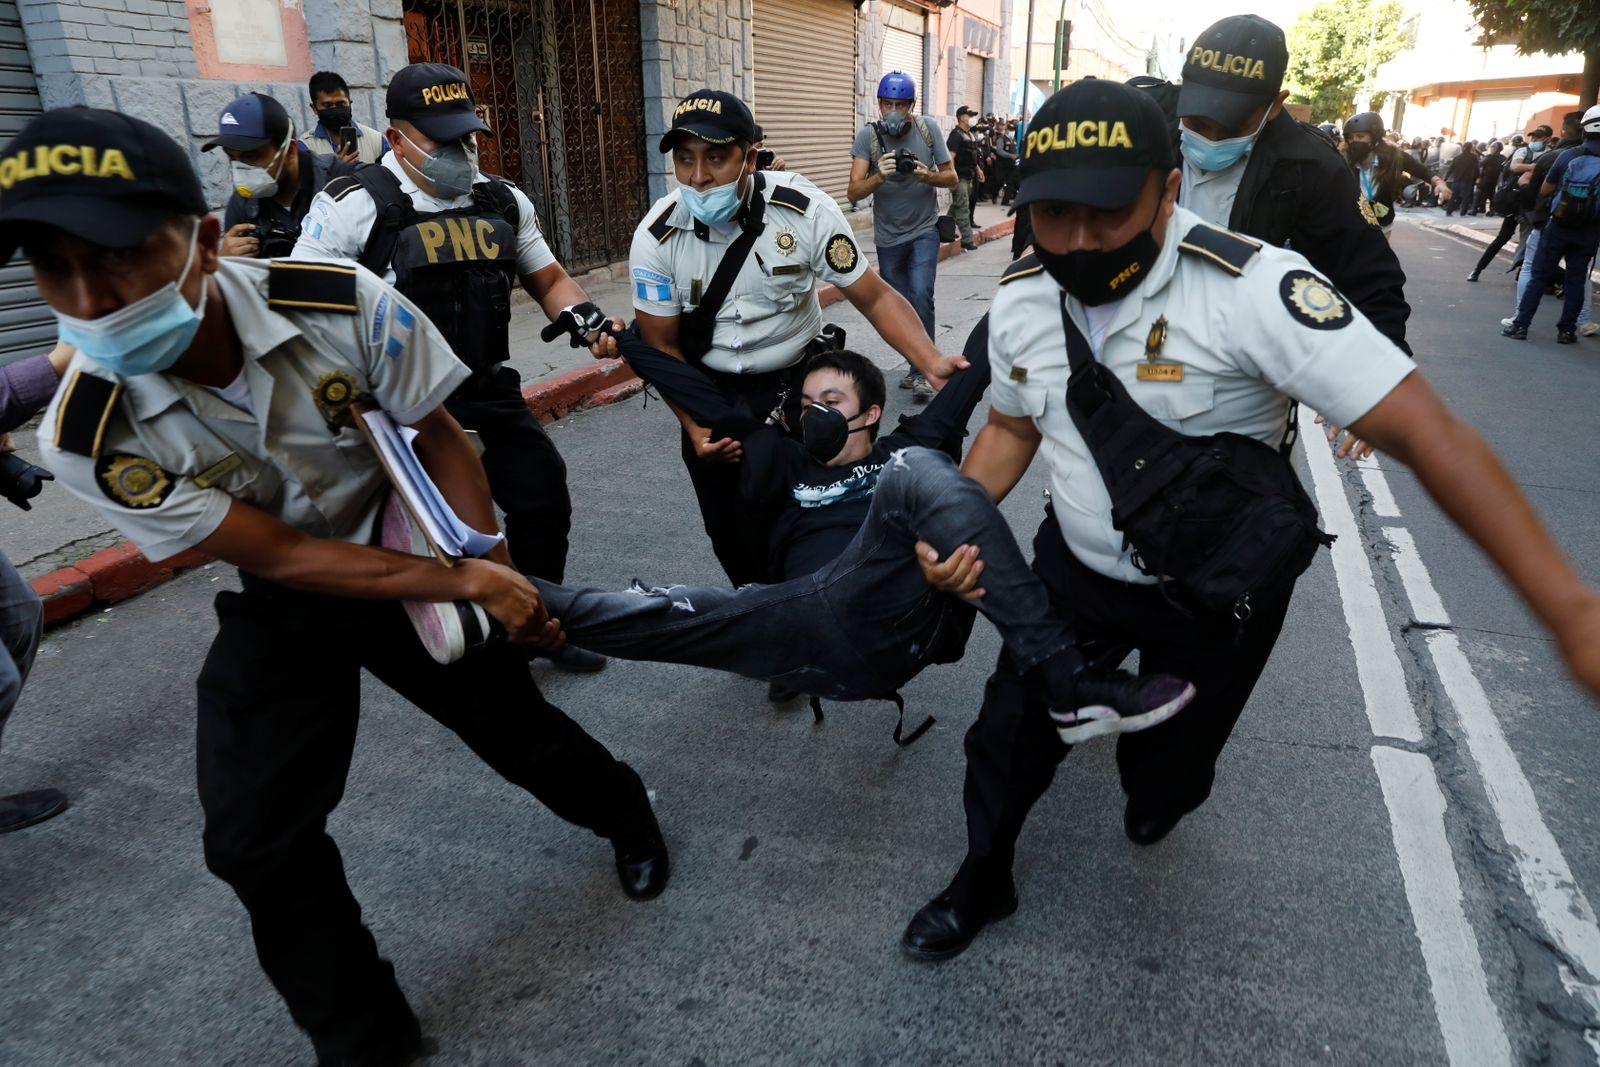 Police officers carry a demonstrator taking part in a protest demanding the resignation of President Alejandro Giammattei, in Guatemala City